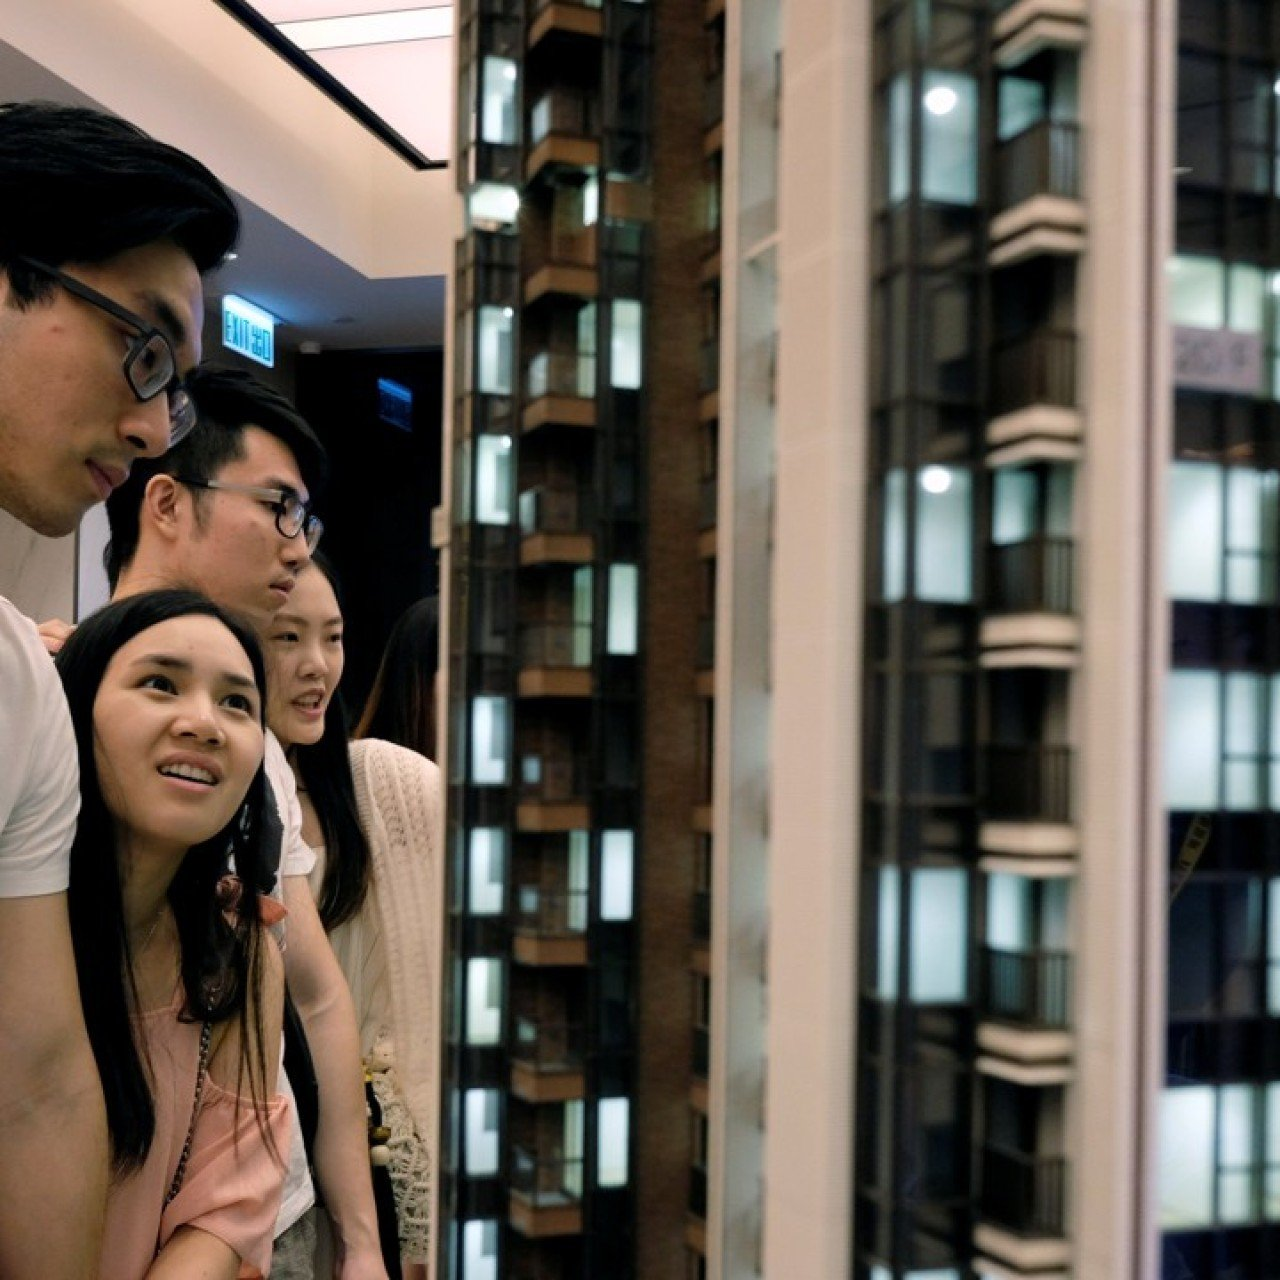 Hong Kong, world's most overvalued housing market, is at greatest